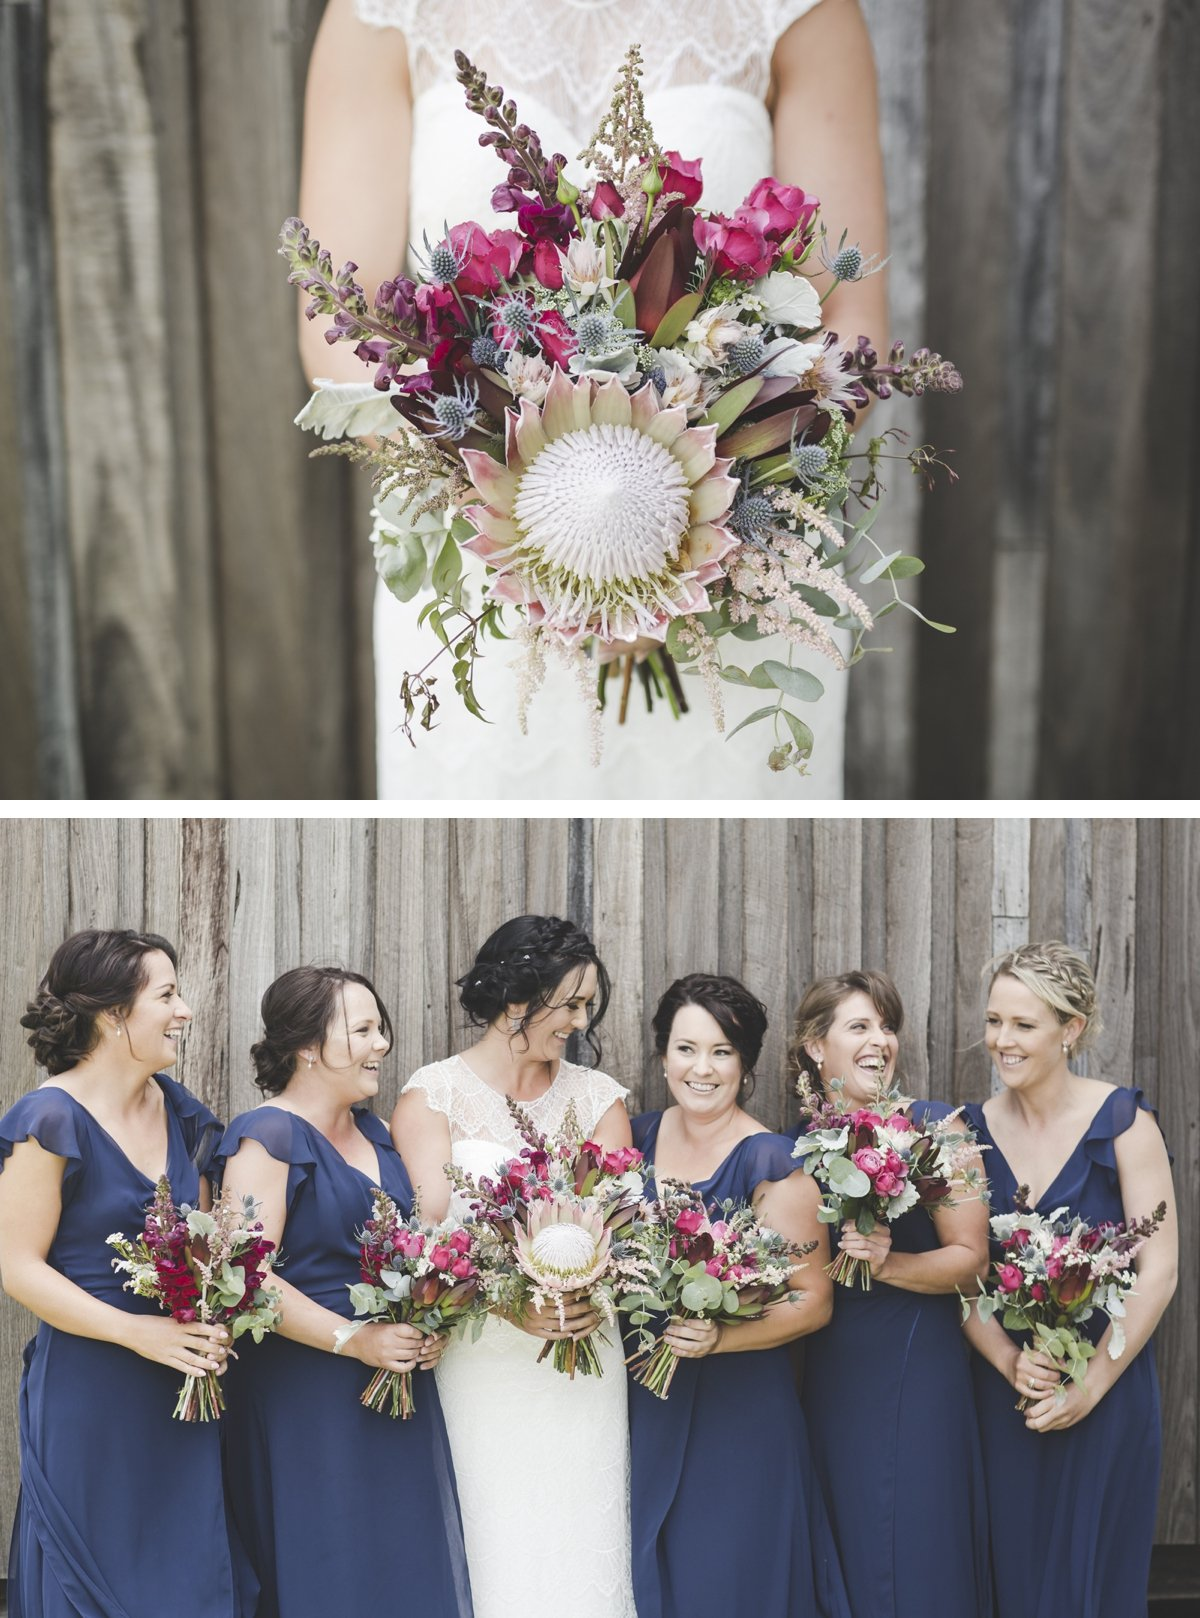 tumbarumba-batlow-wedding-by-peppermint-studios-wagga-wagga-wedding-photographer-at-bago-state-forest_1641